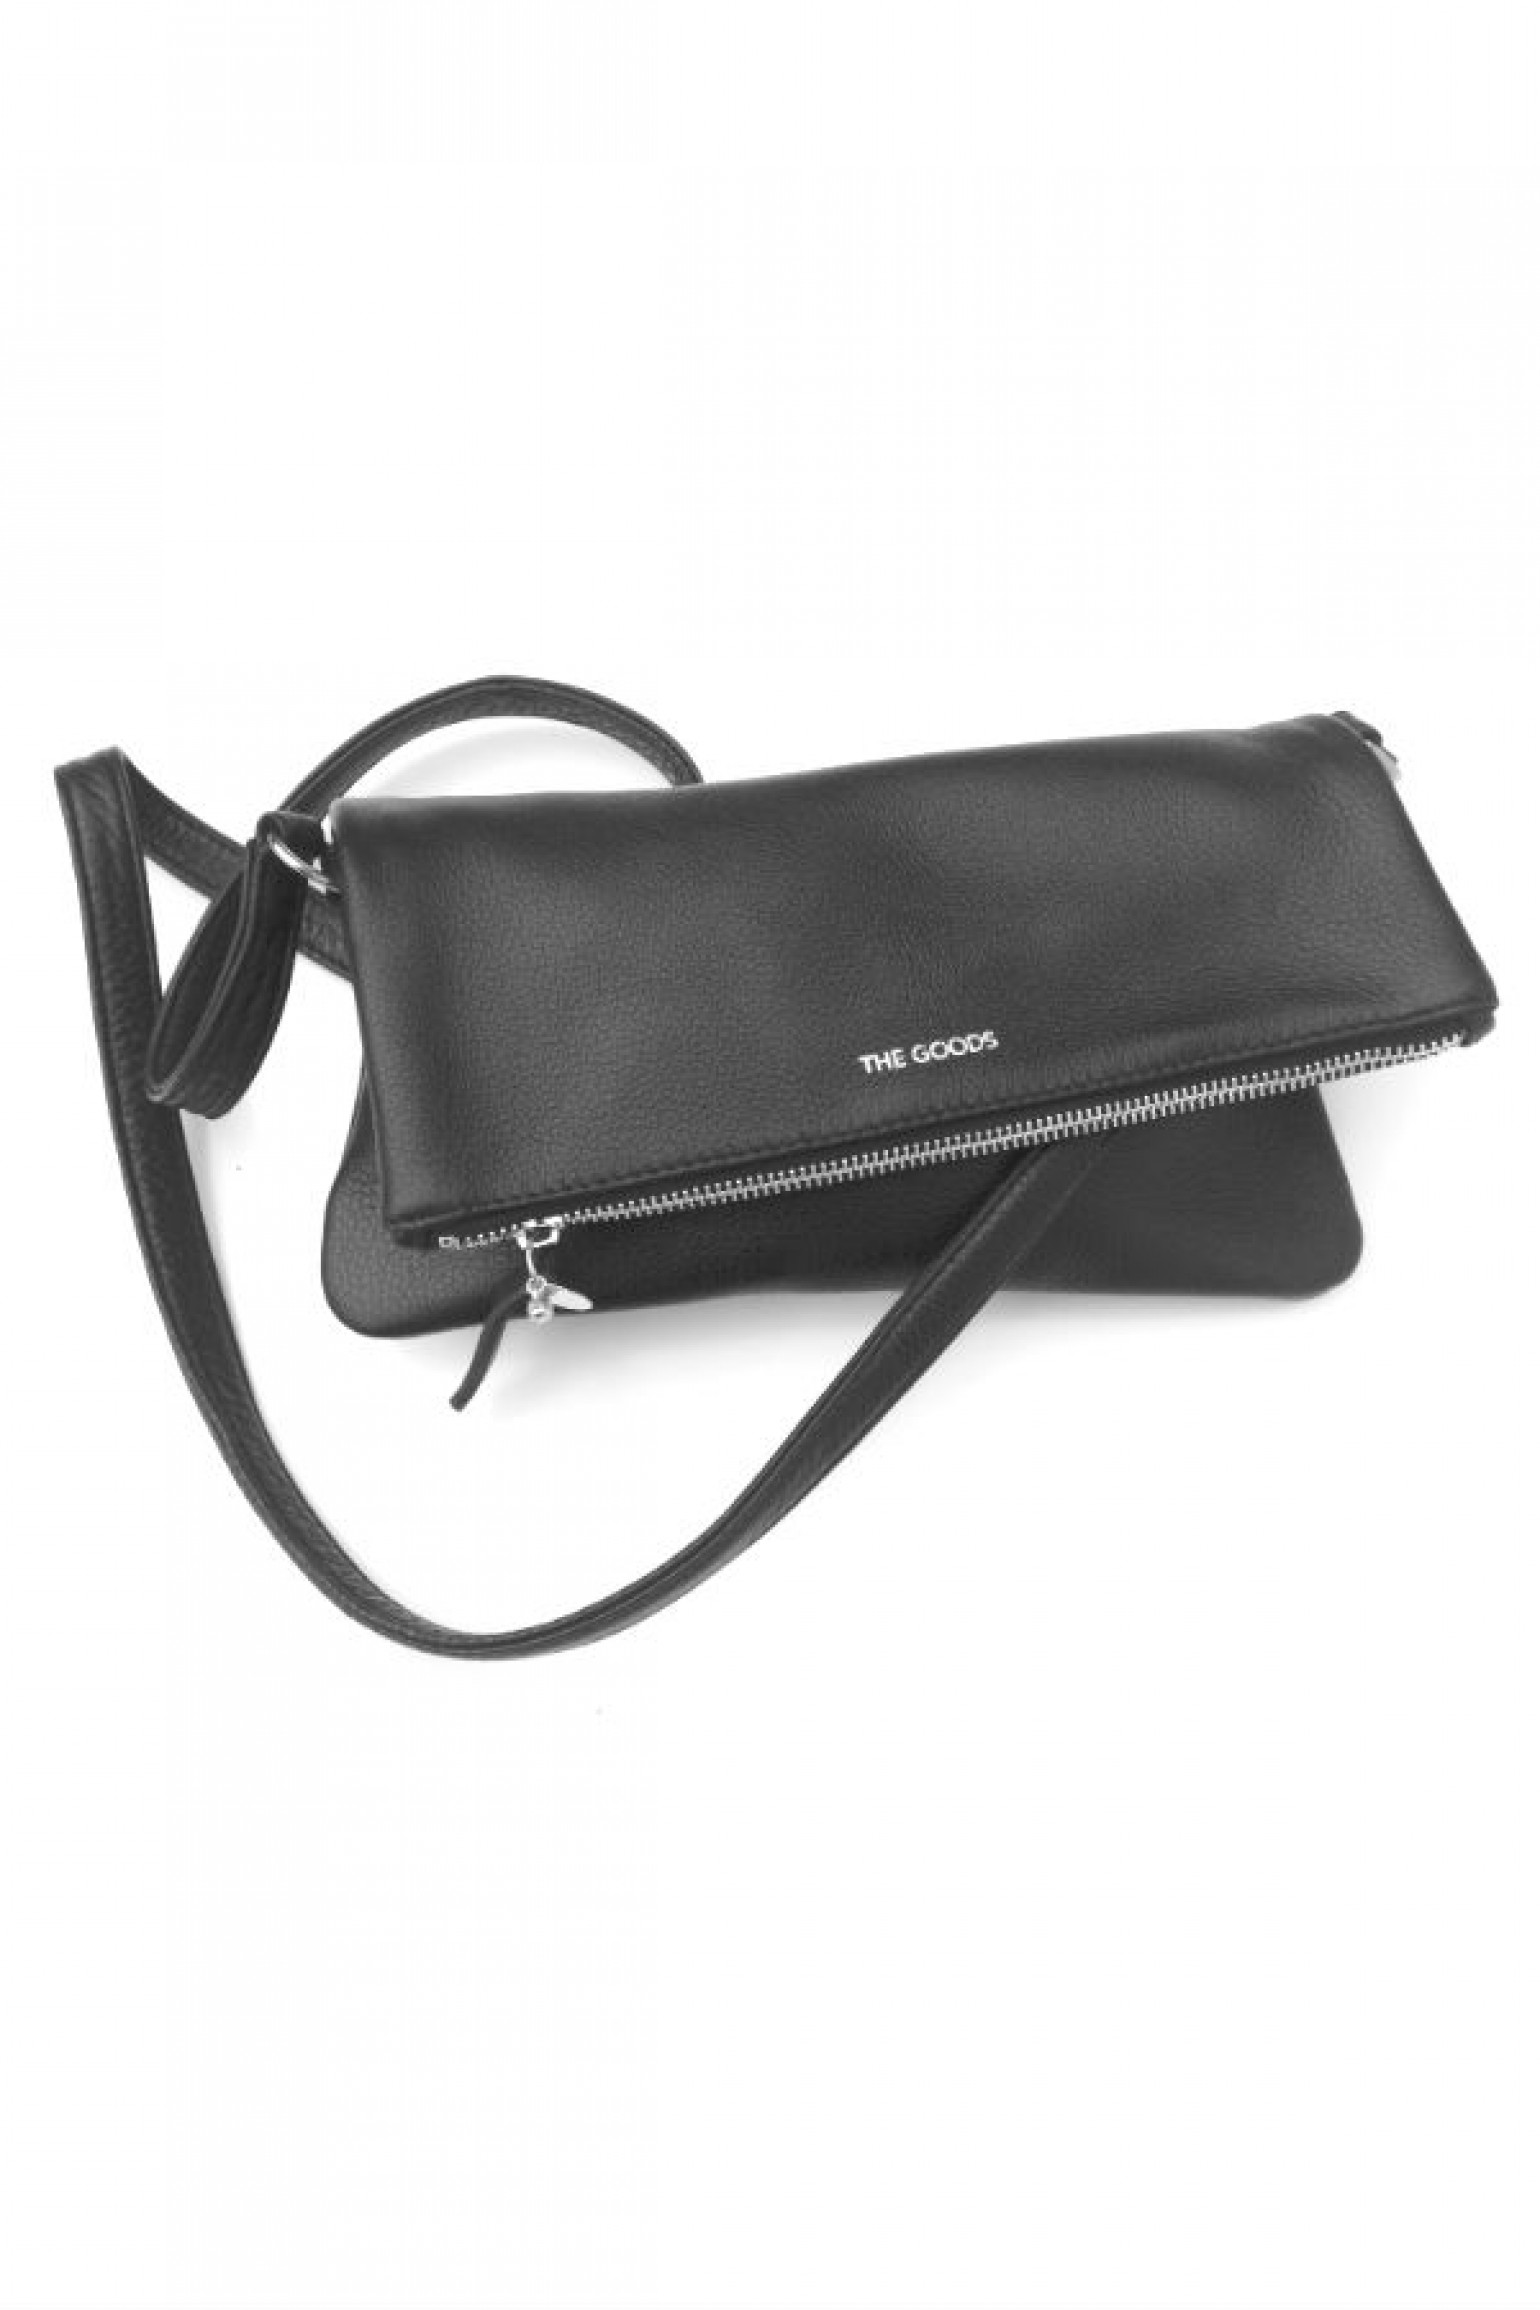 The Goods Co Leather Cross Body Bag - Black